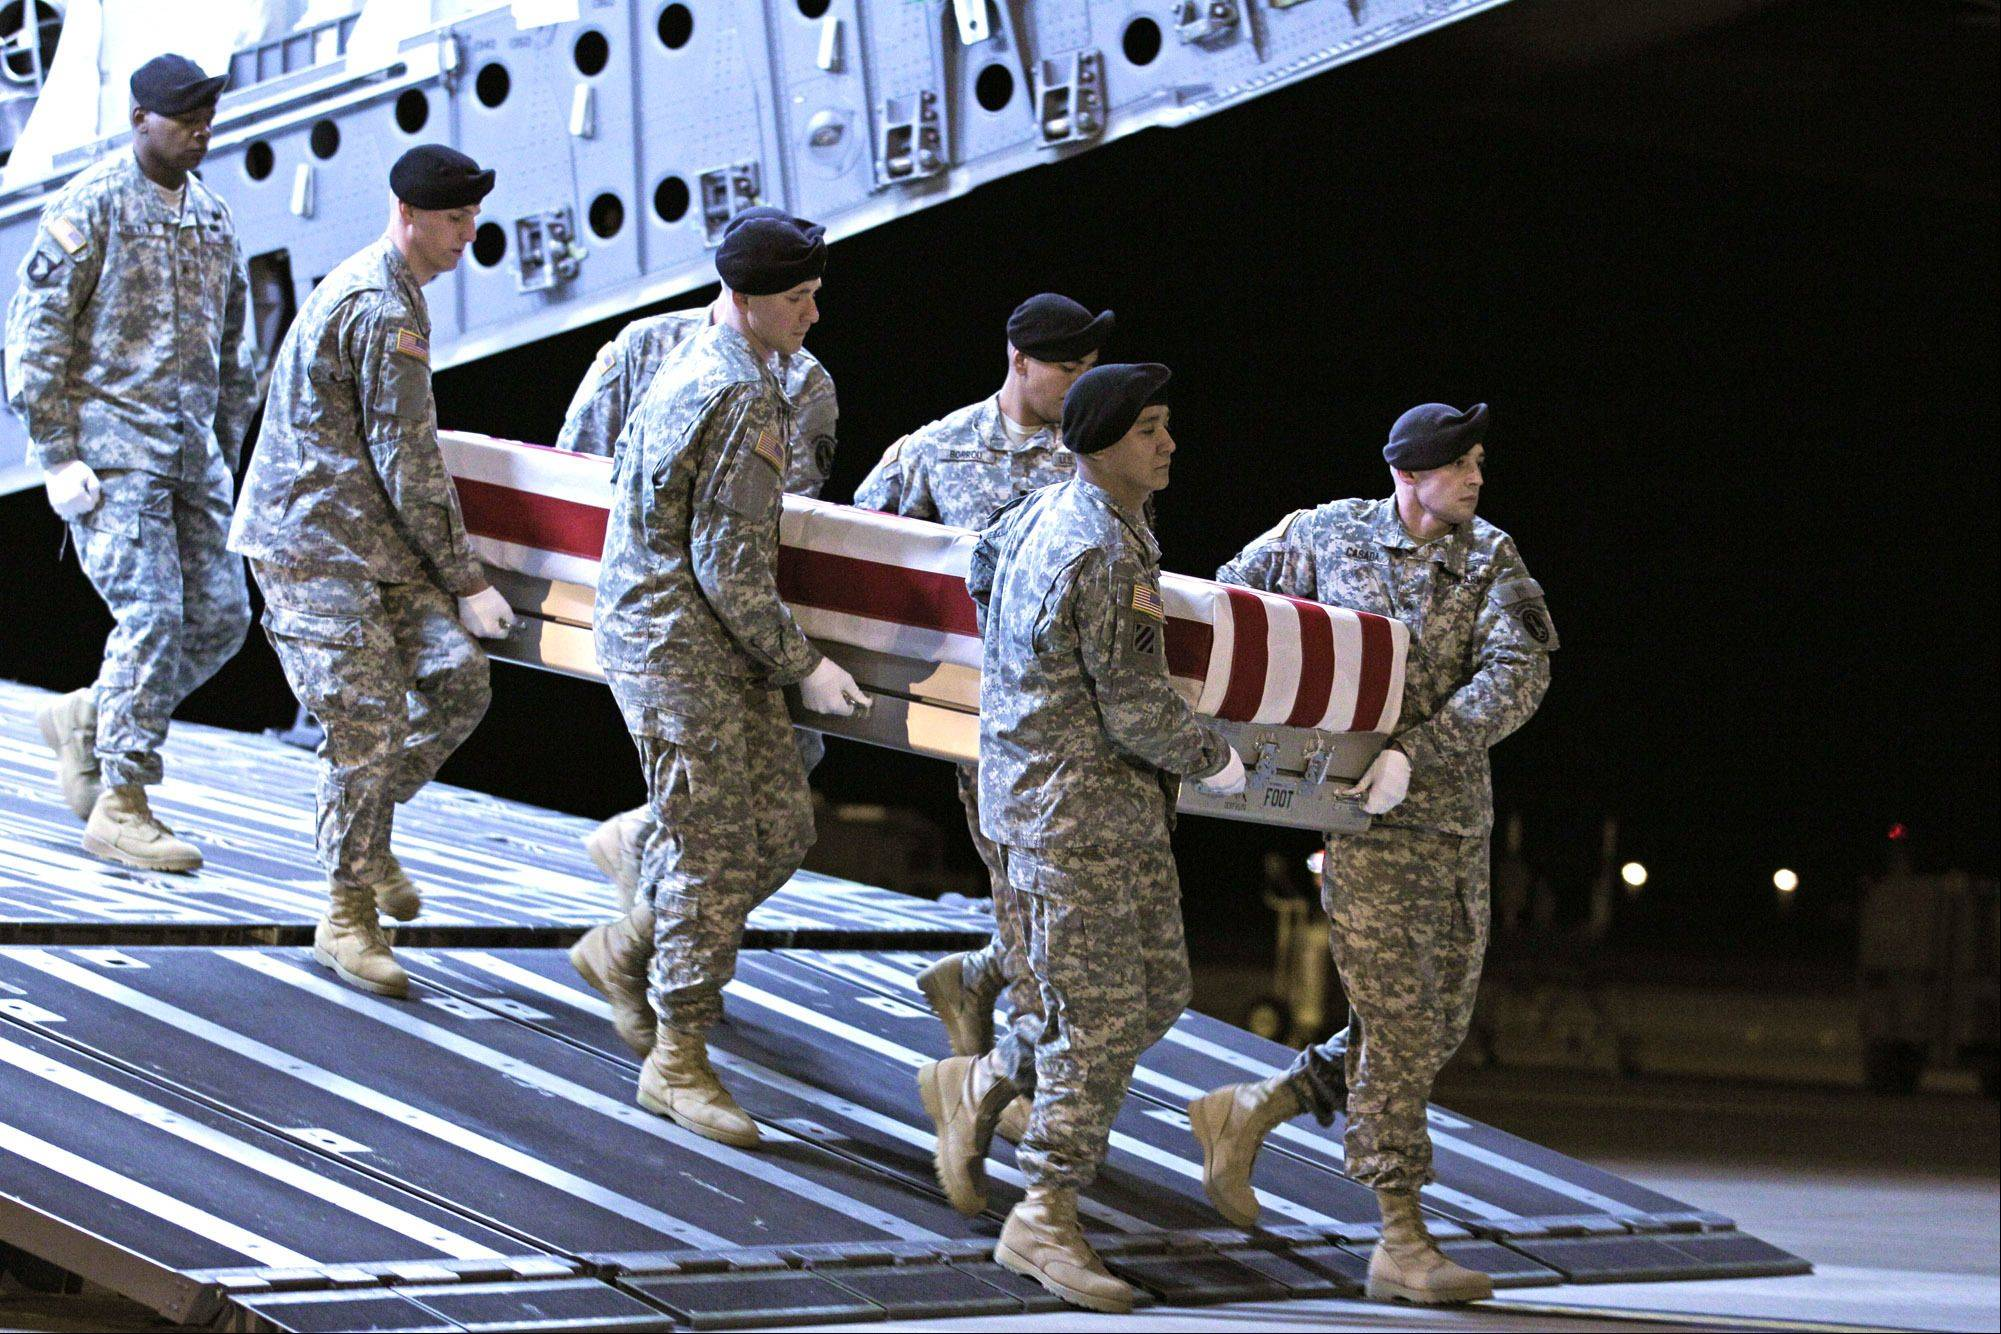 An Army carry team moves the transfer case containing the remains of Spc. Christopher Patterson of North Aurora upon arrival at Dover Air Force Base Sunday. Patterson was serving with the 713th Engineer Company, Indiana National Guard, in Afghanistan. Patterson's funeral is Jan. 20 in Batavia.